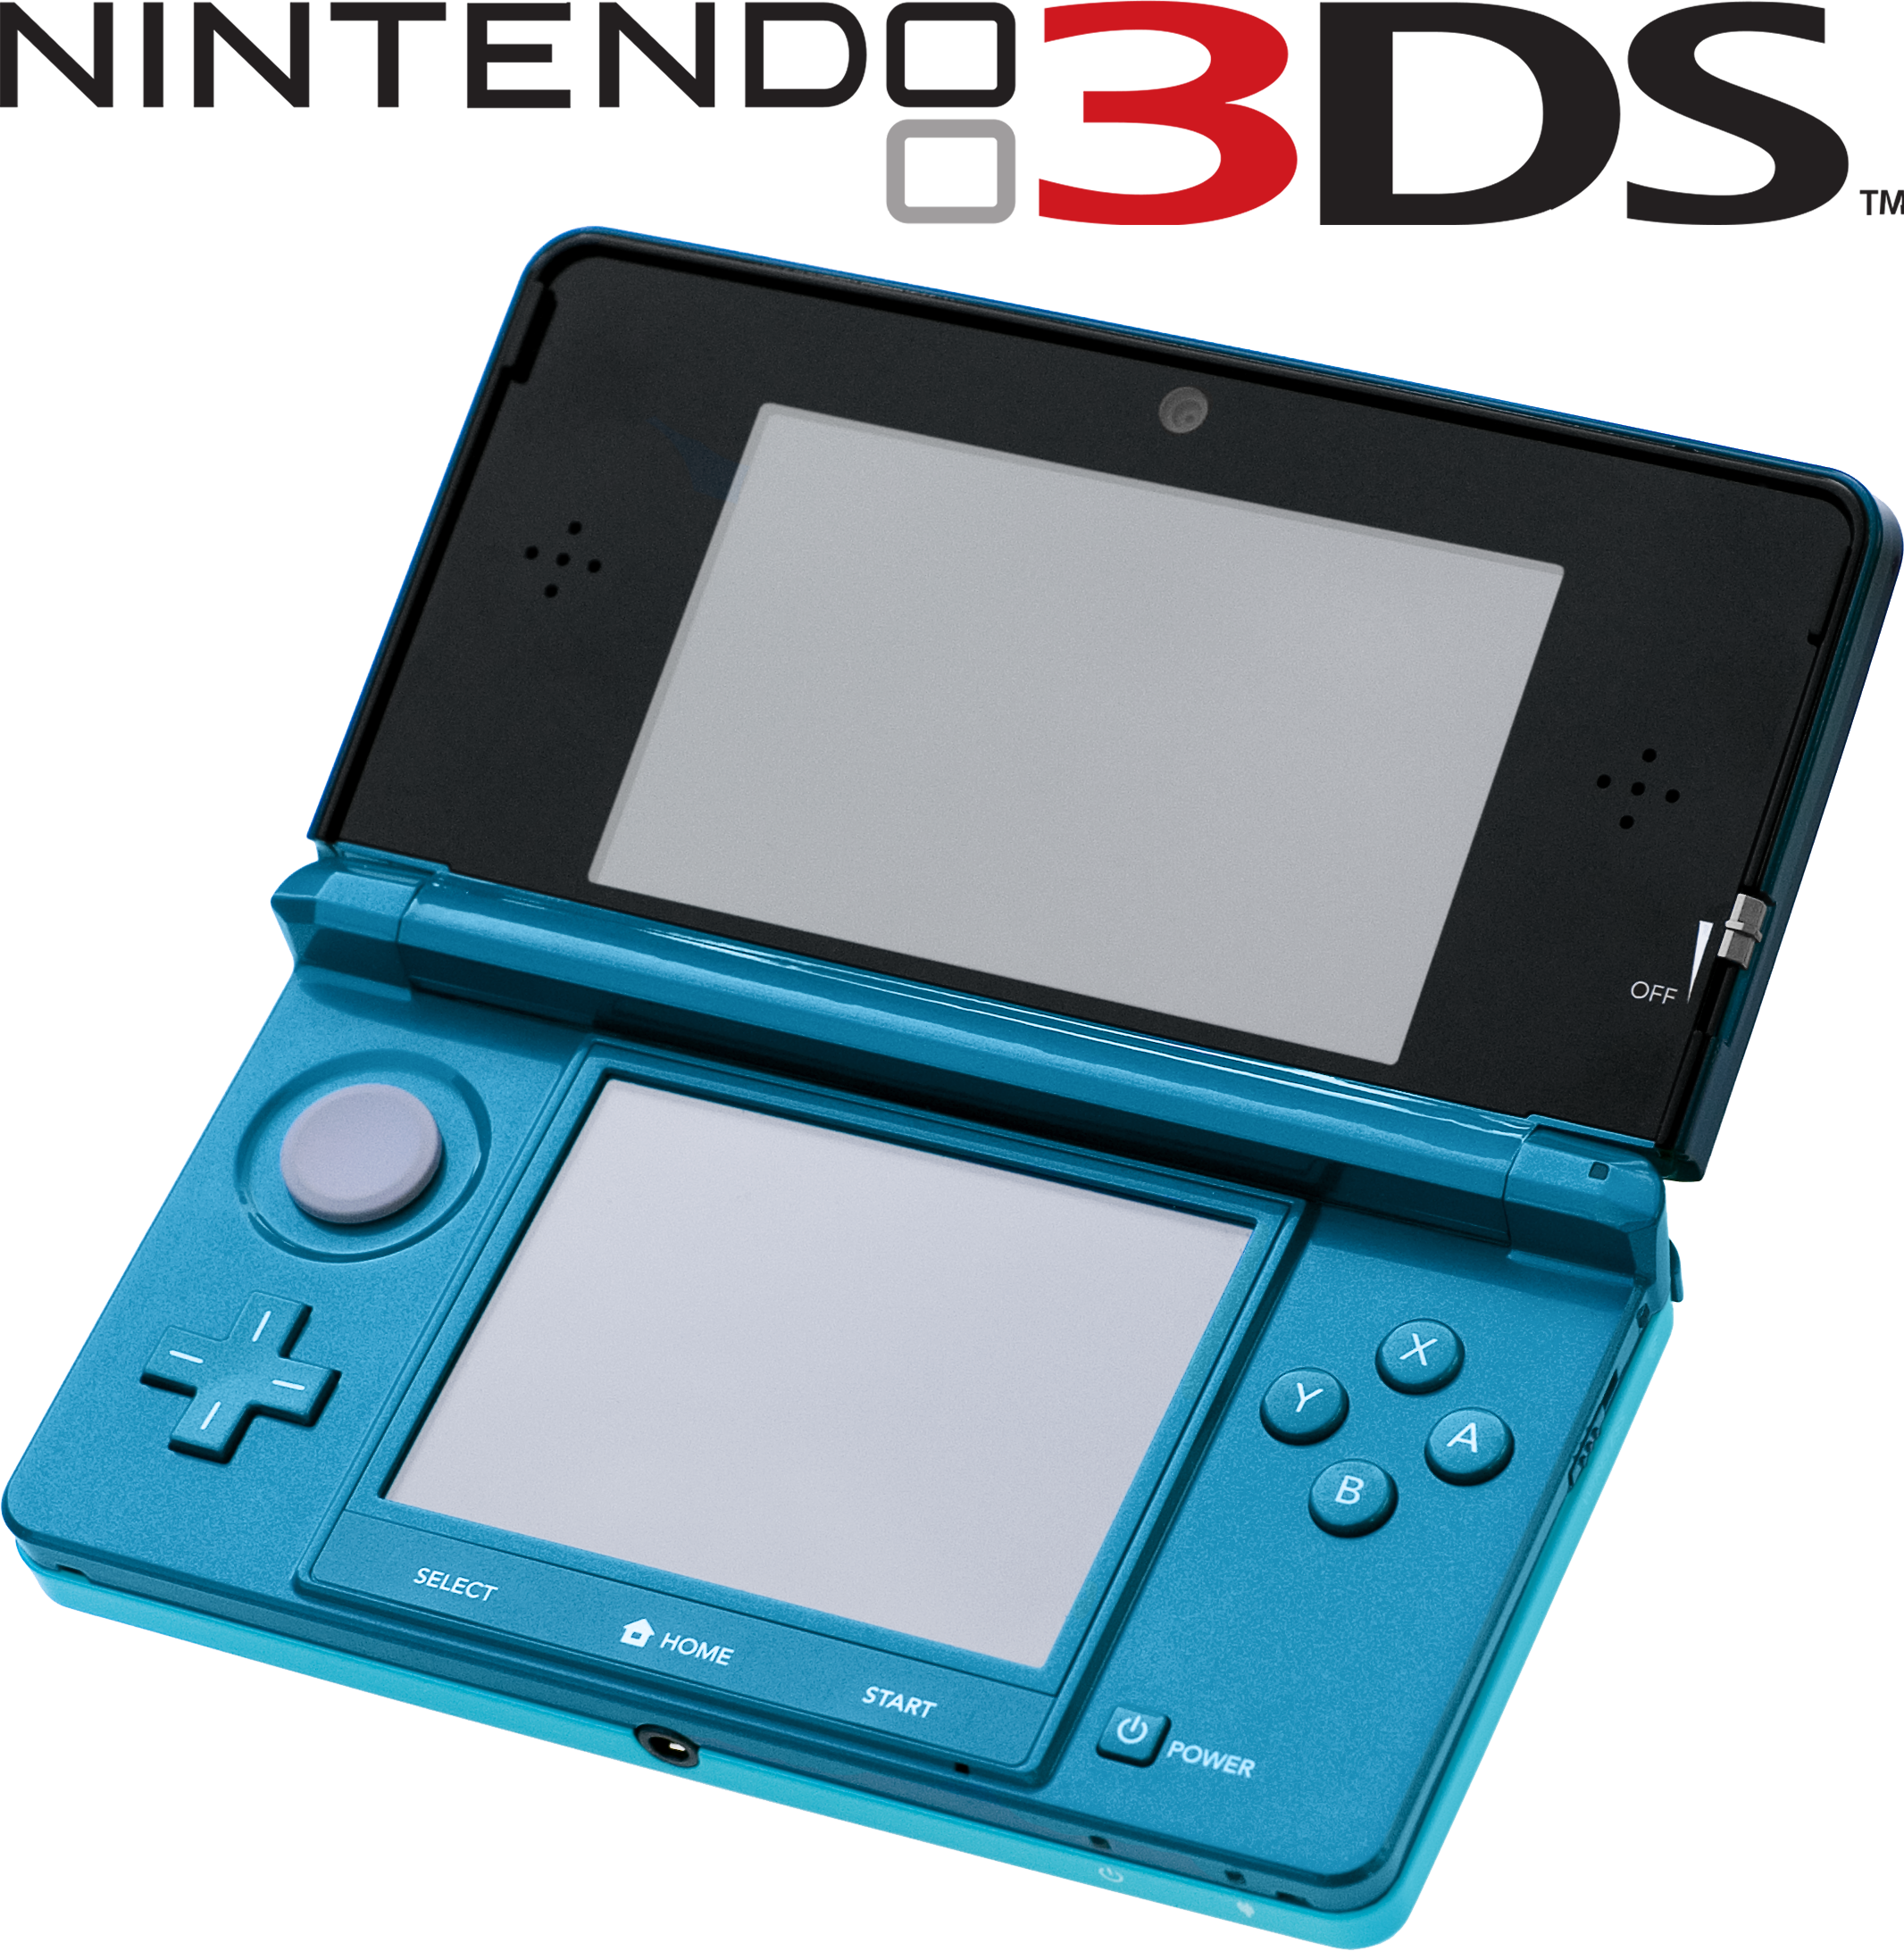 Nintendo 3DS - Sonic News Network, the Sonic Wiki